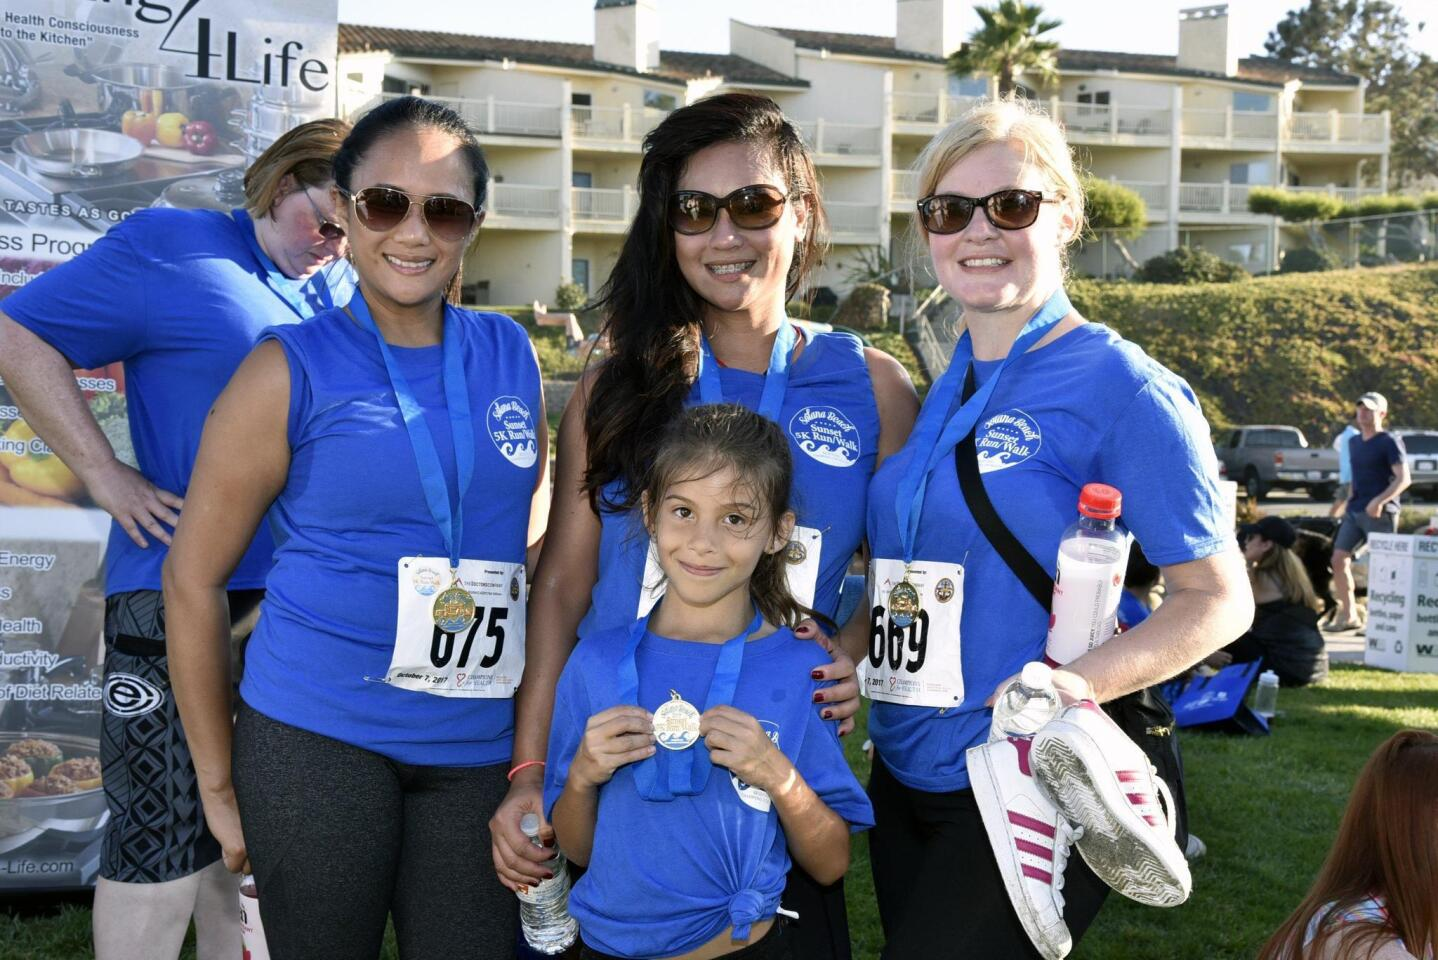 Solana Beach Sunset 5K and Wellness Expo